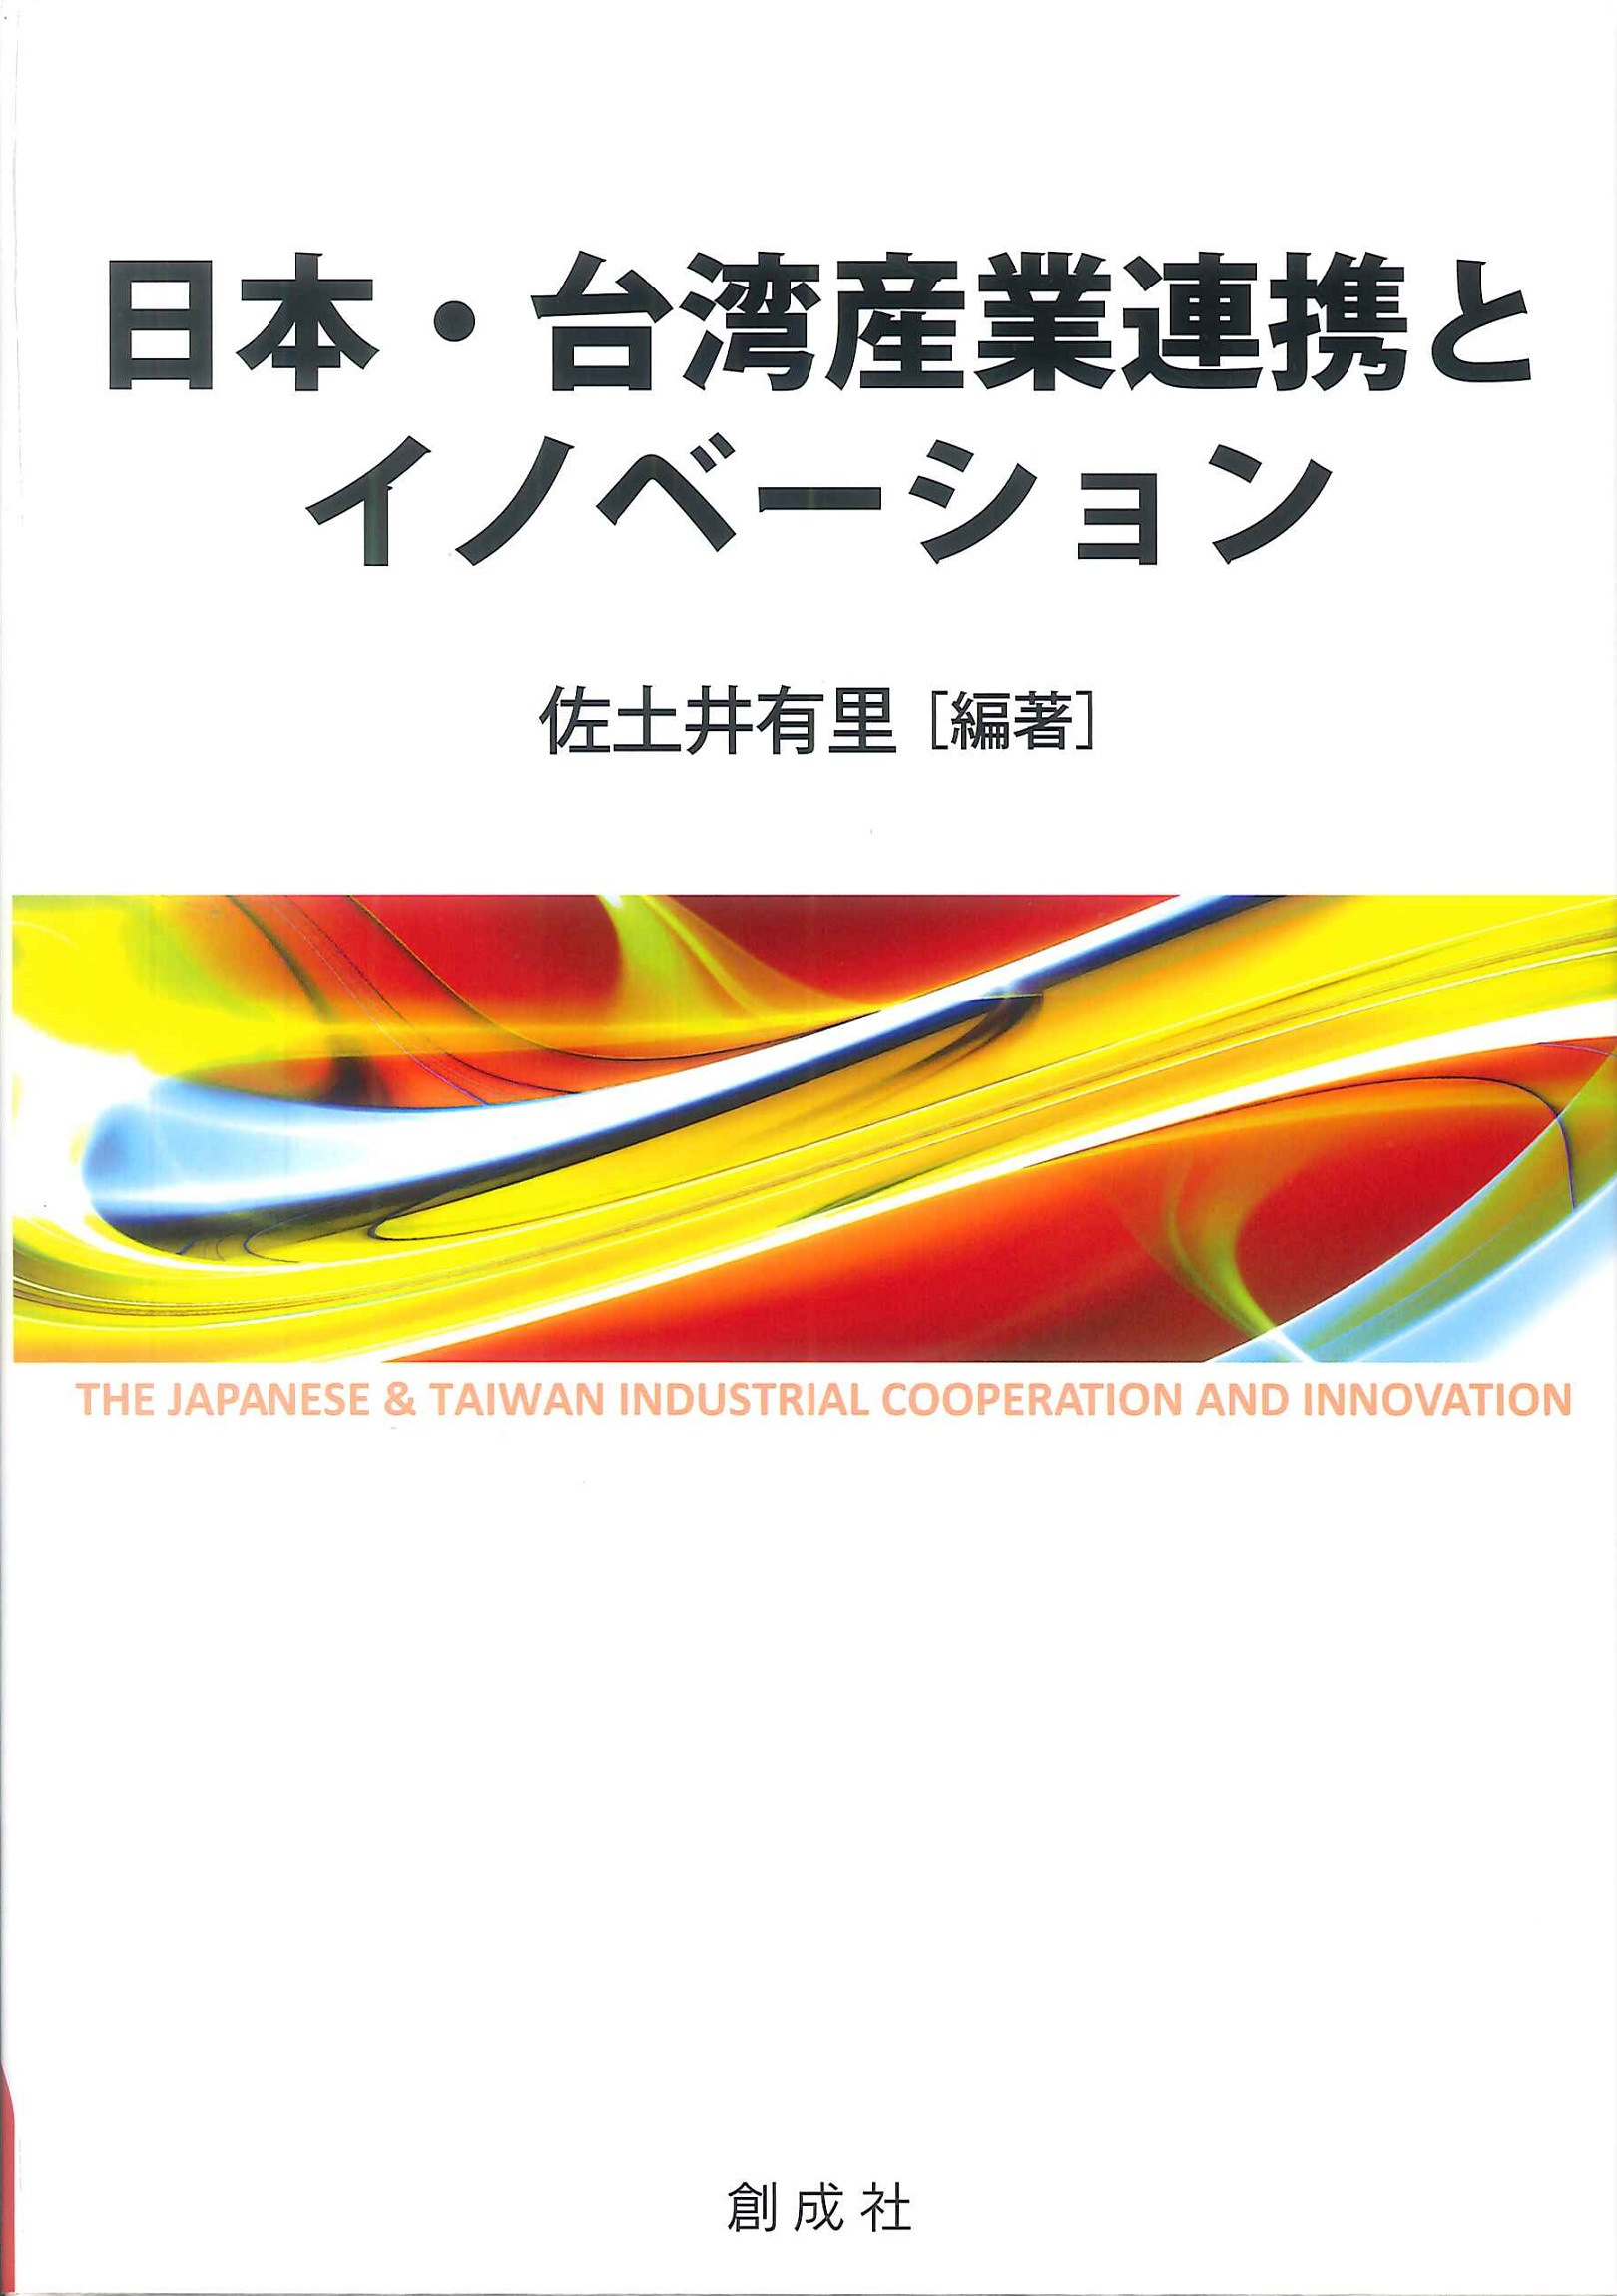 日本.台湾産業連携とイノベーション=The Japanese & Taiwan industrial cooperation and innovation